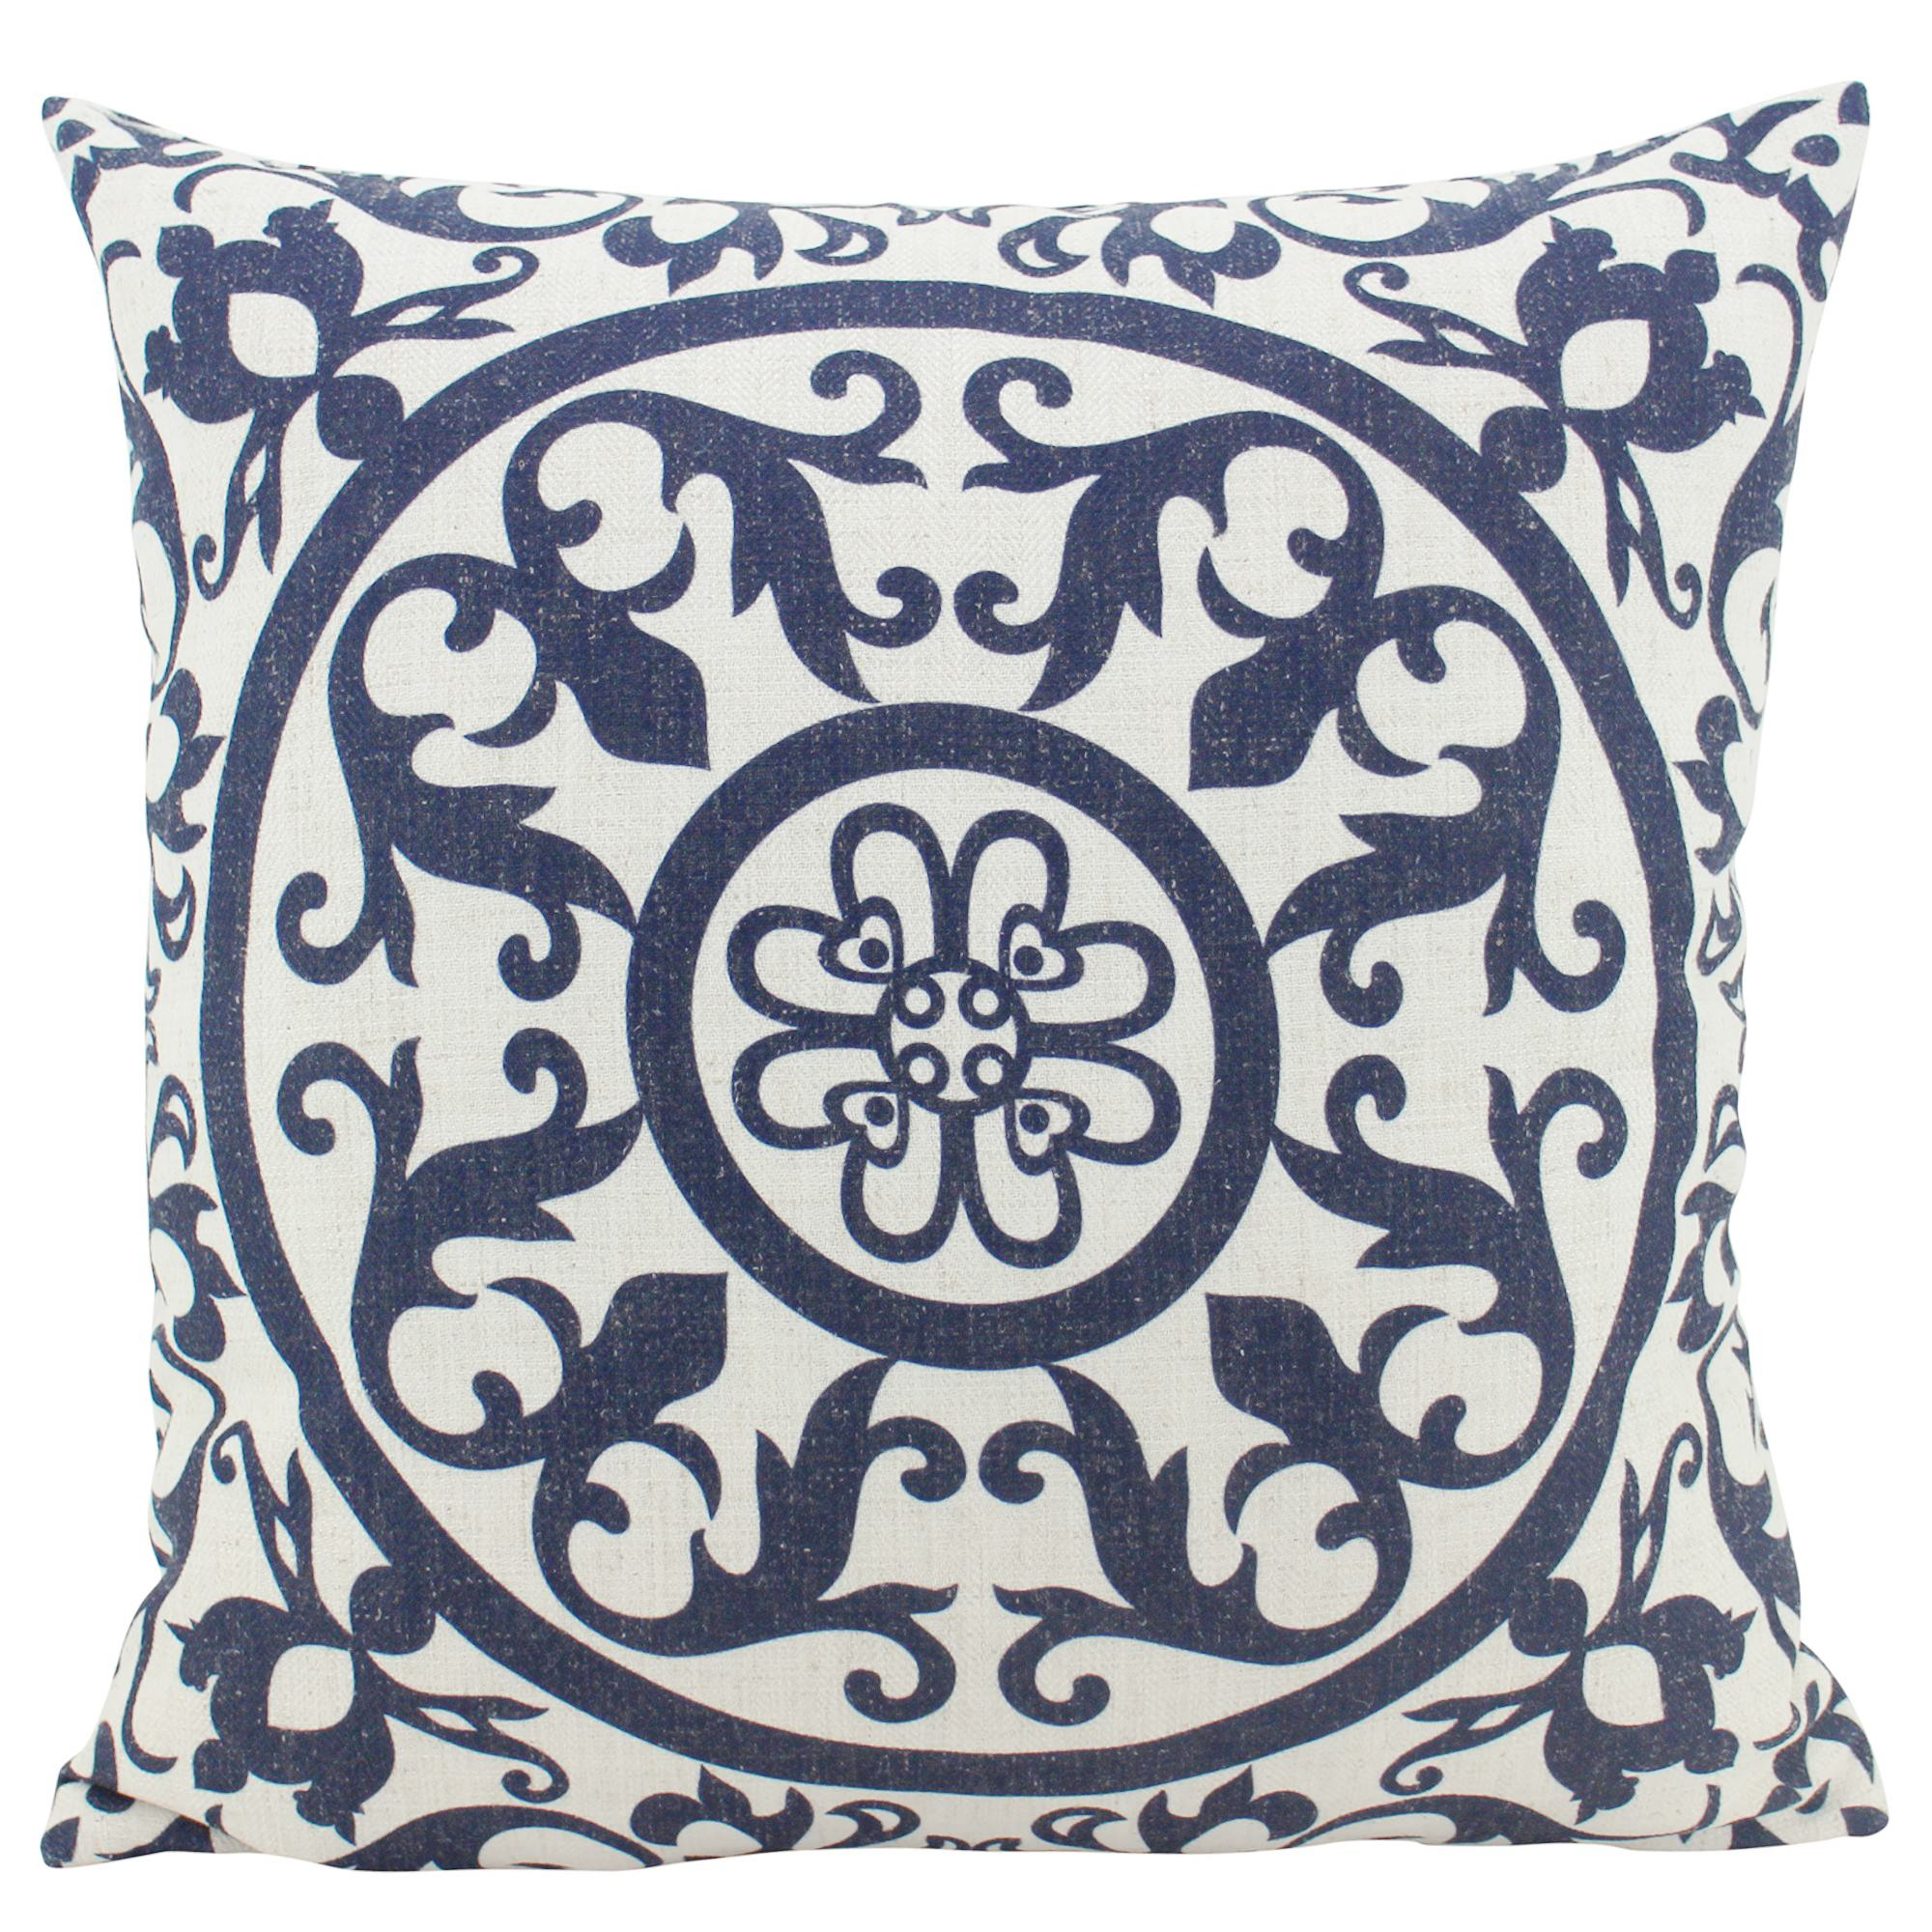 Hamptons Linen Scatter Cushion, Navy